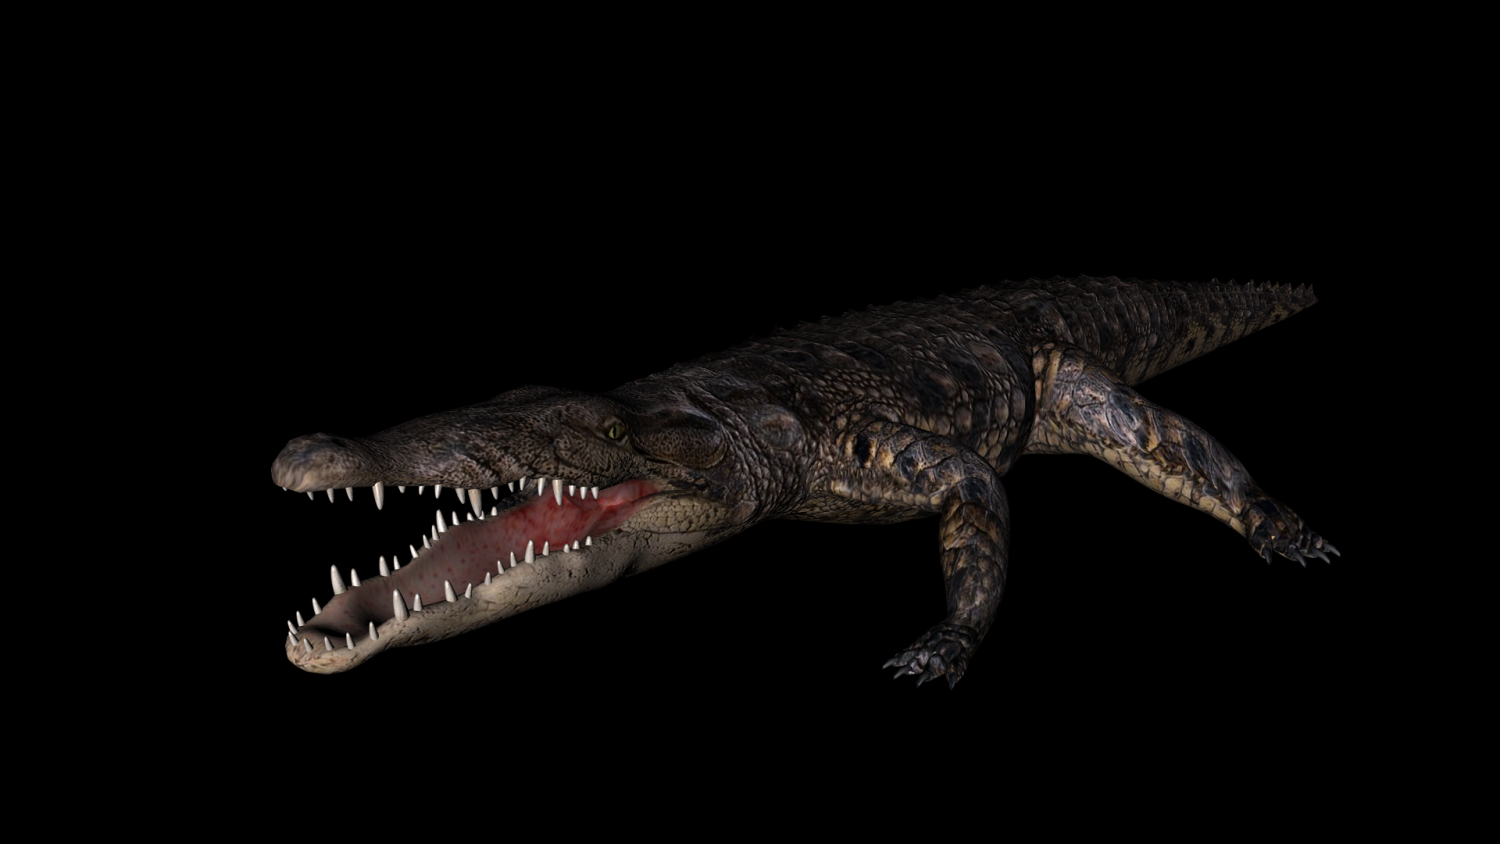 Crocodile rigged 3D Model in Other 3DExport